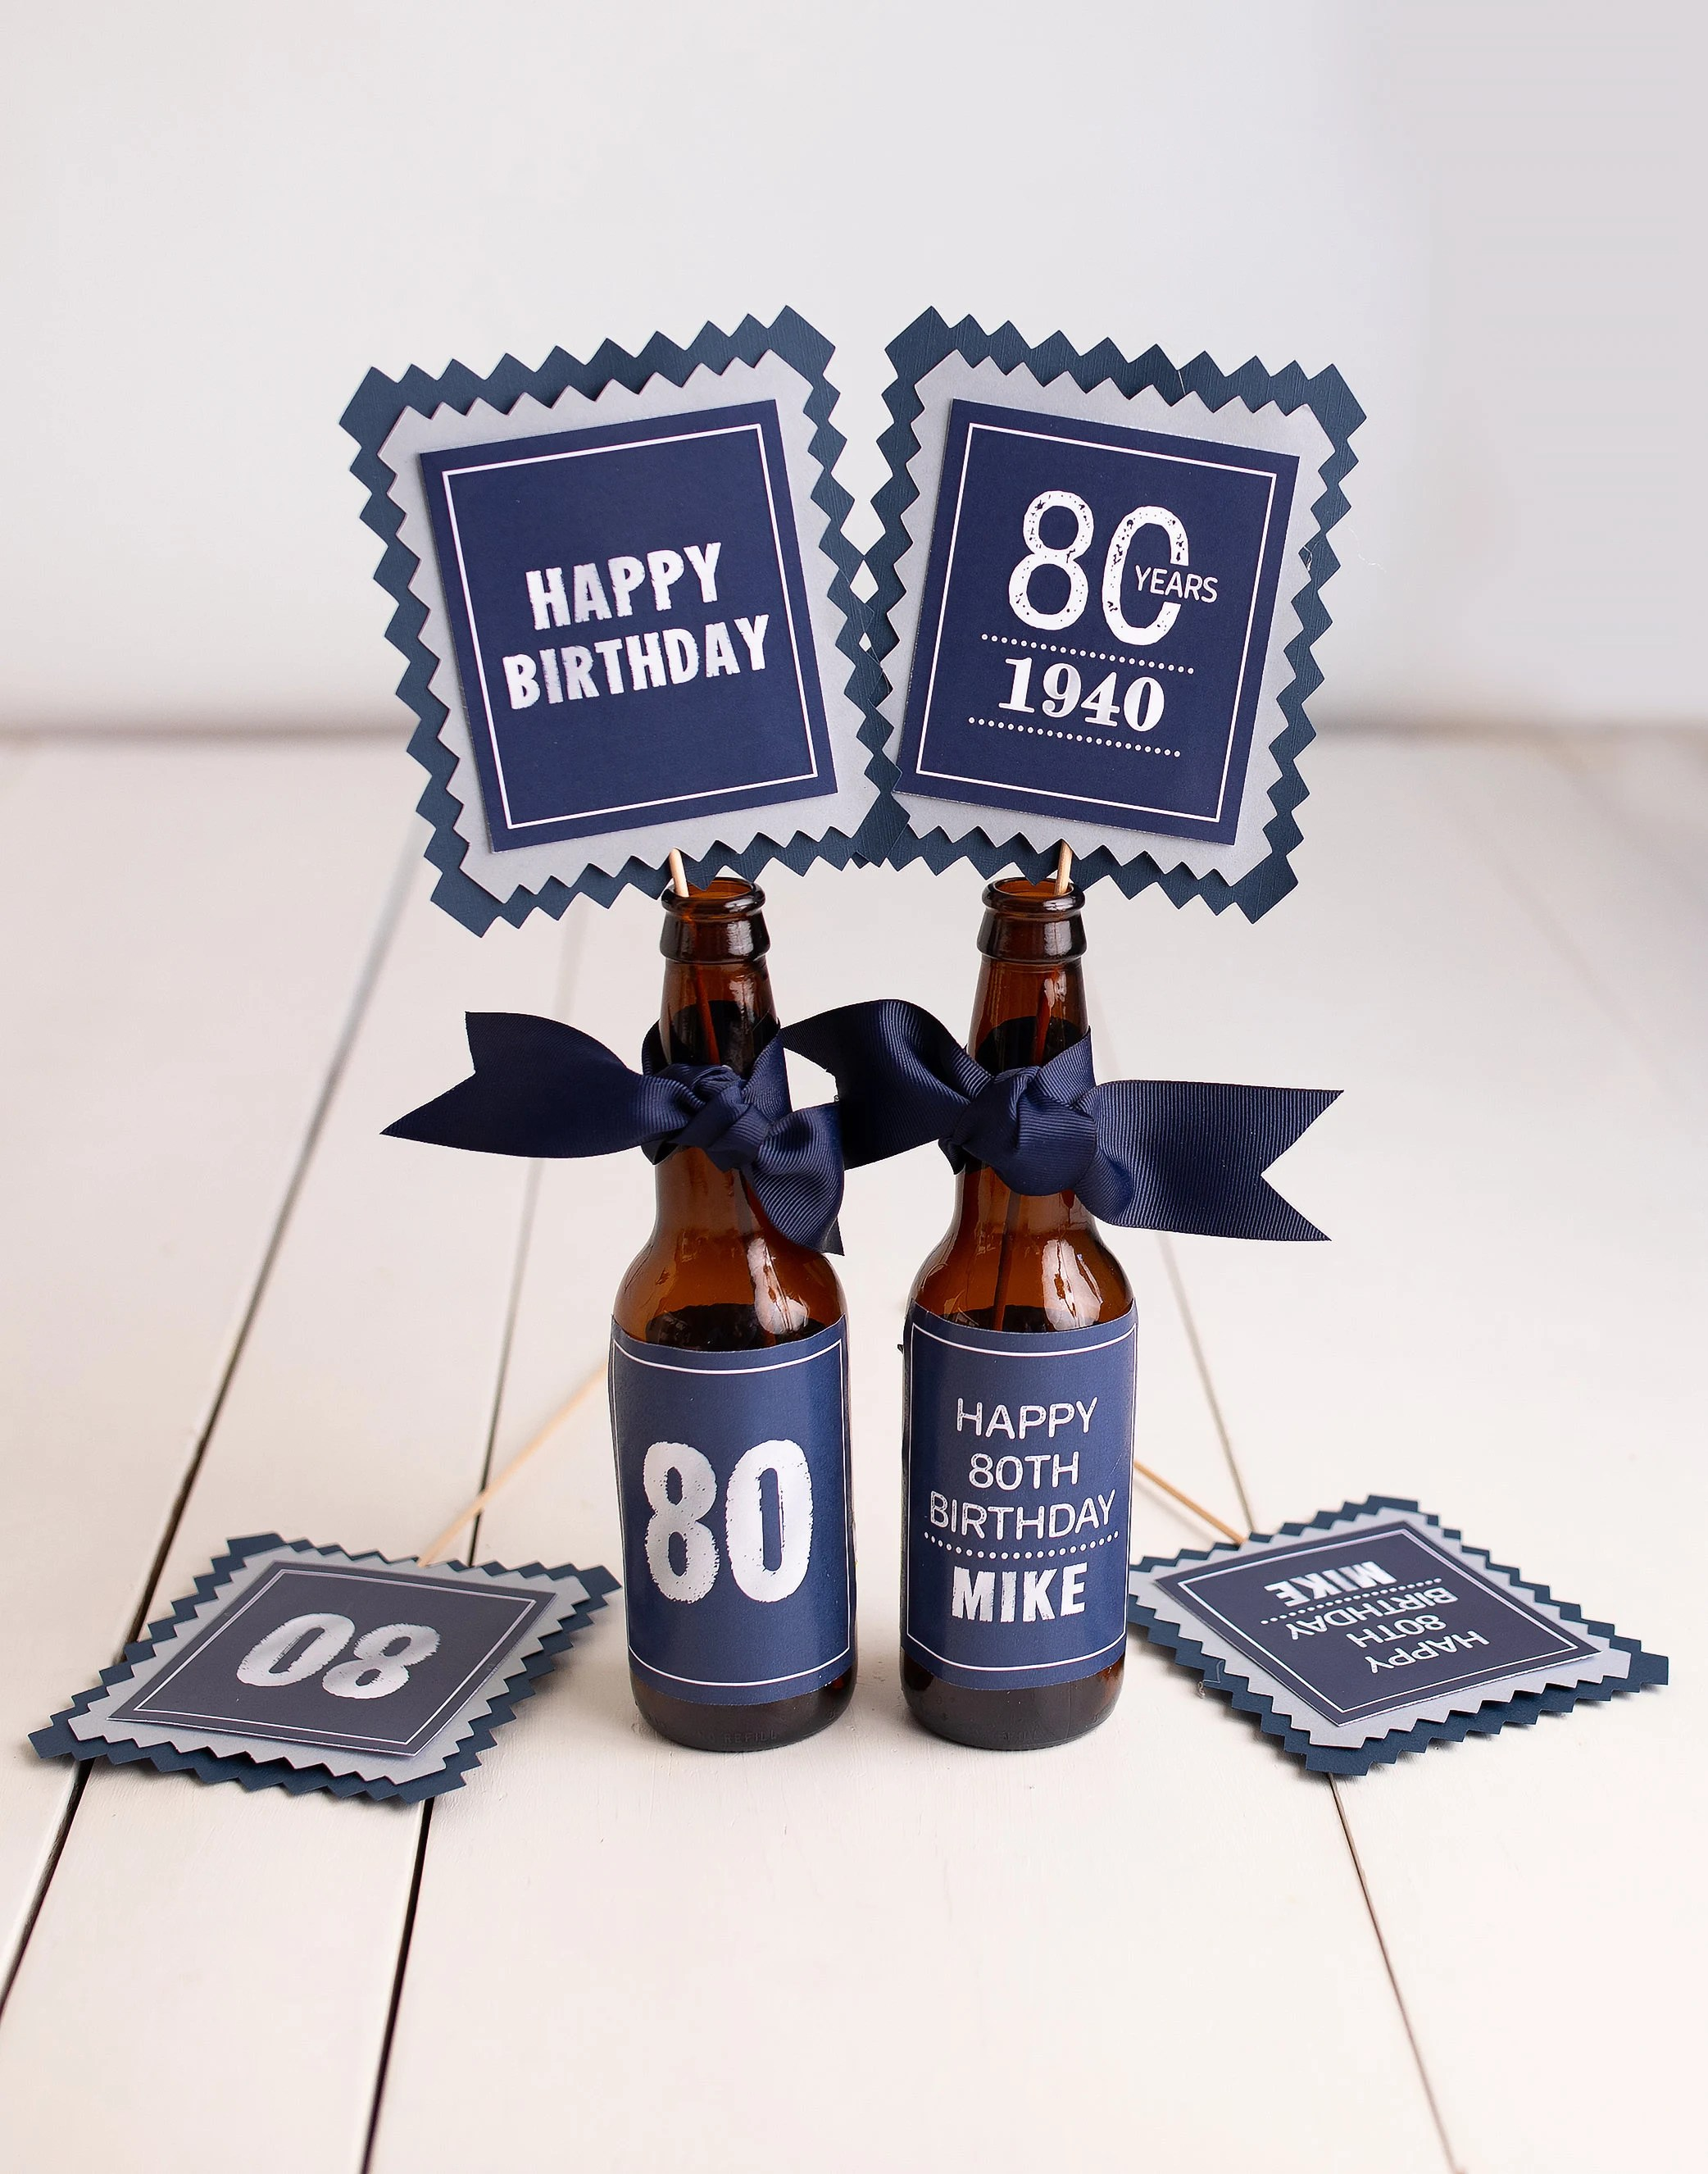 80th Birthday Centerpiece Beer Centerpiece Centerpiece Sticks 80th Birthday Party Decorations Any Age